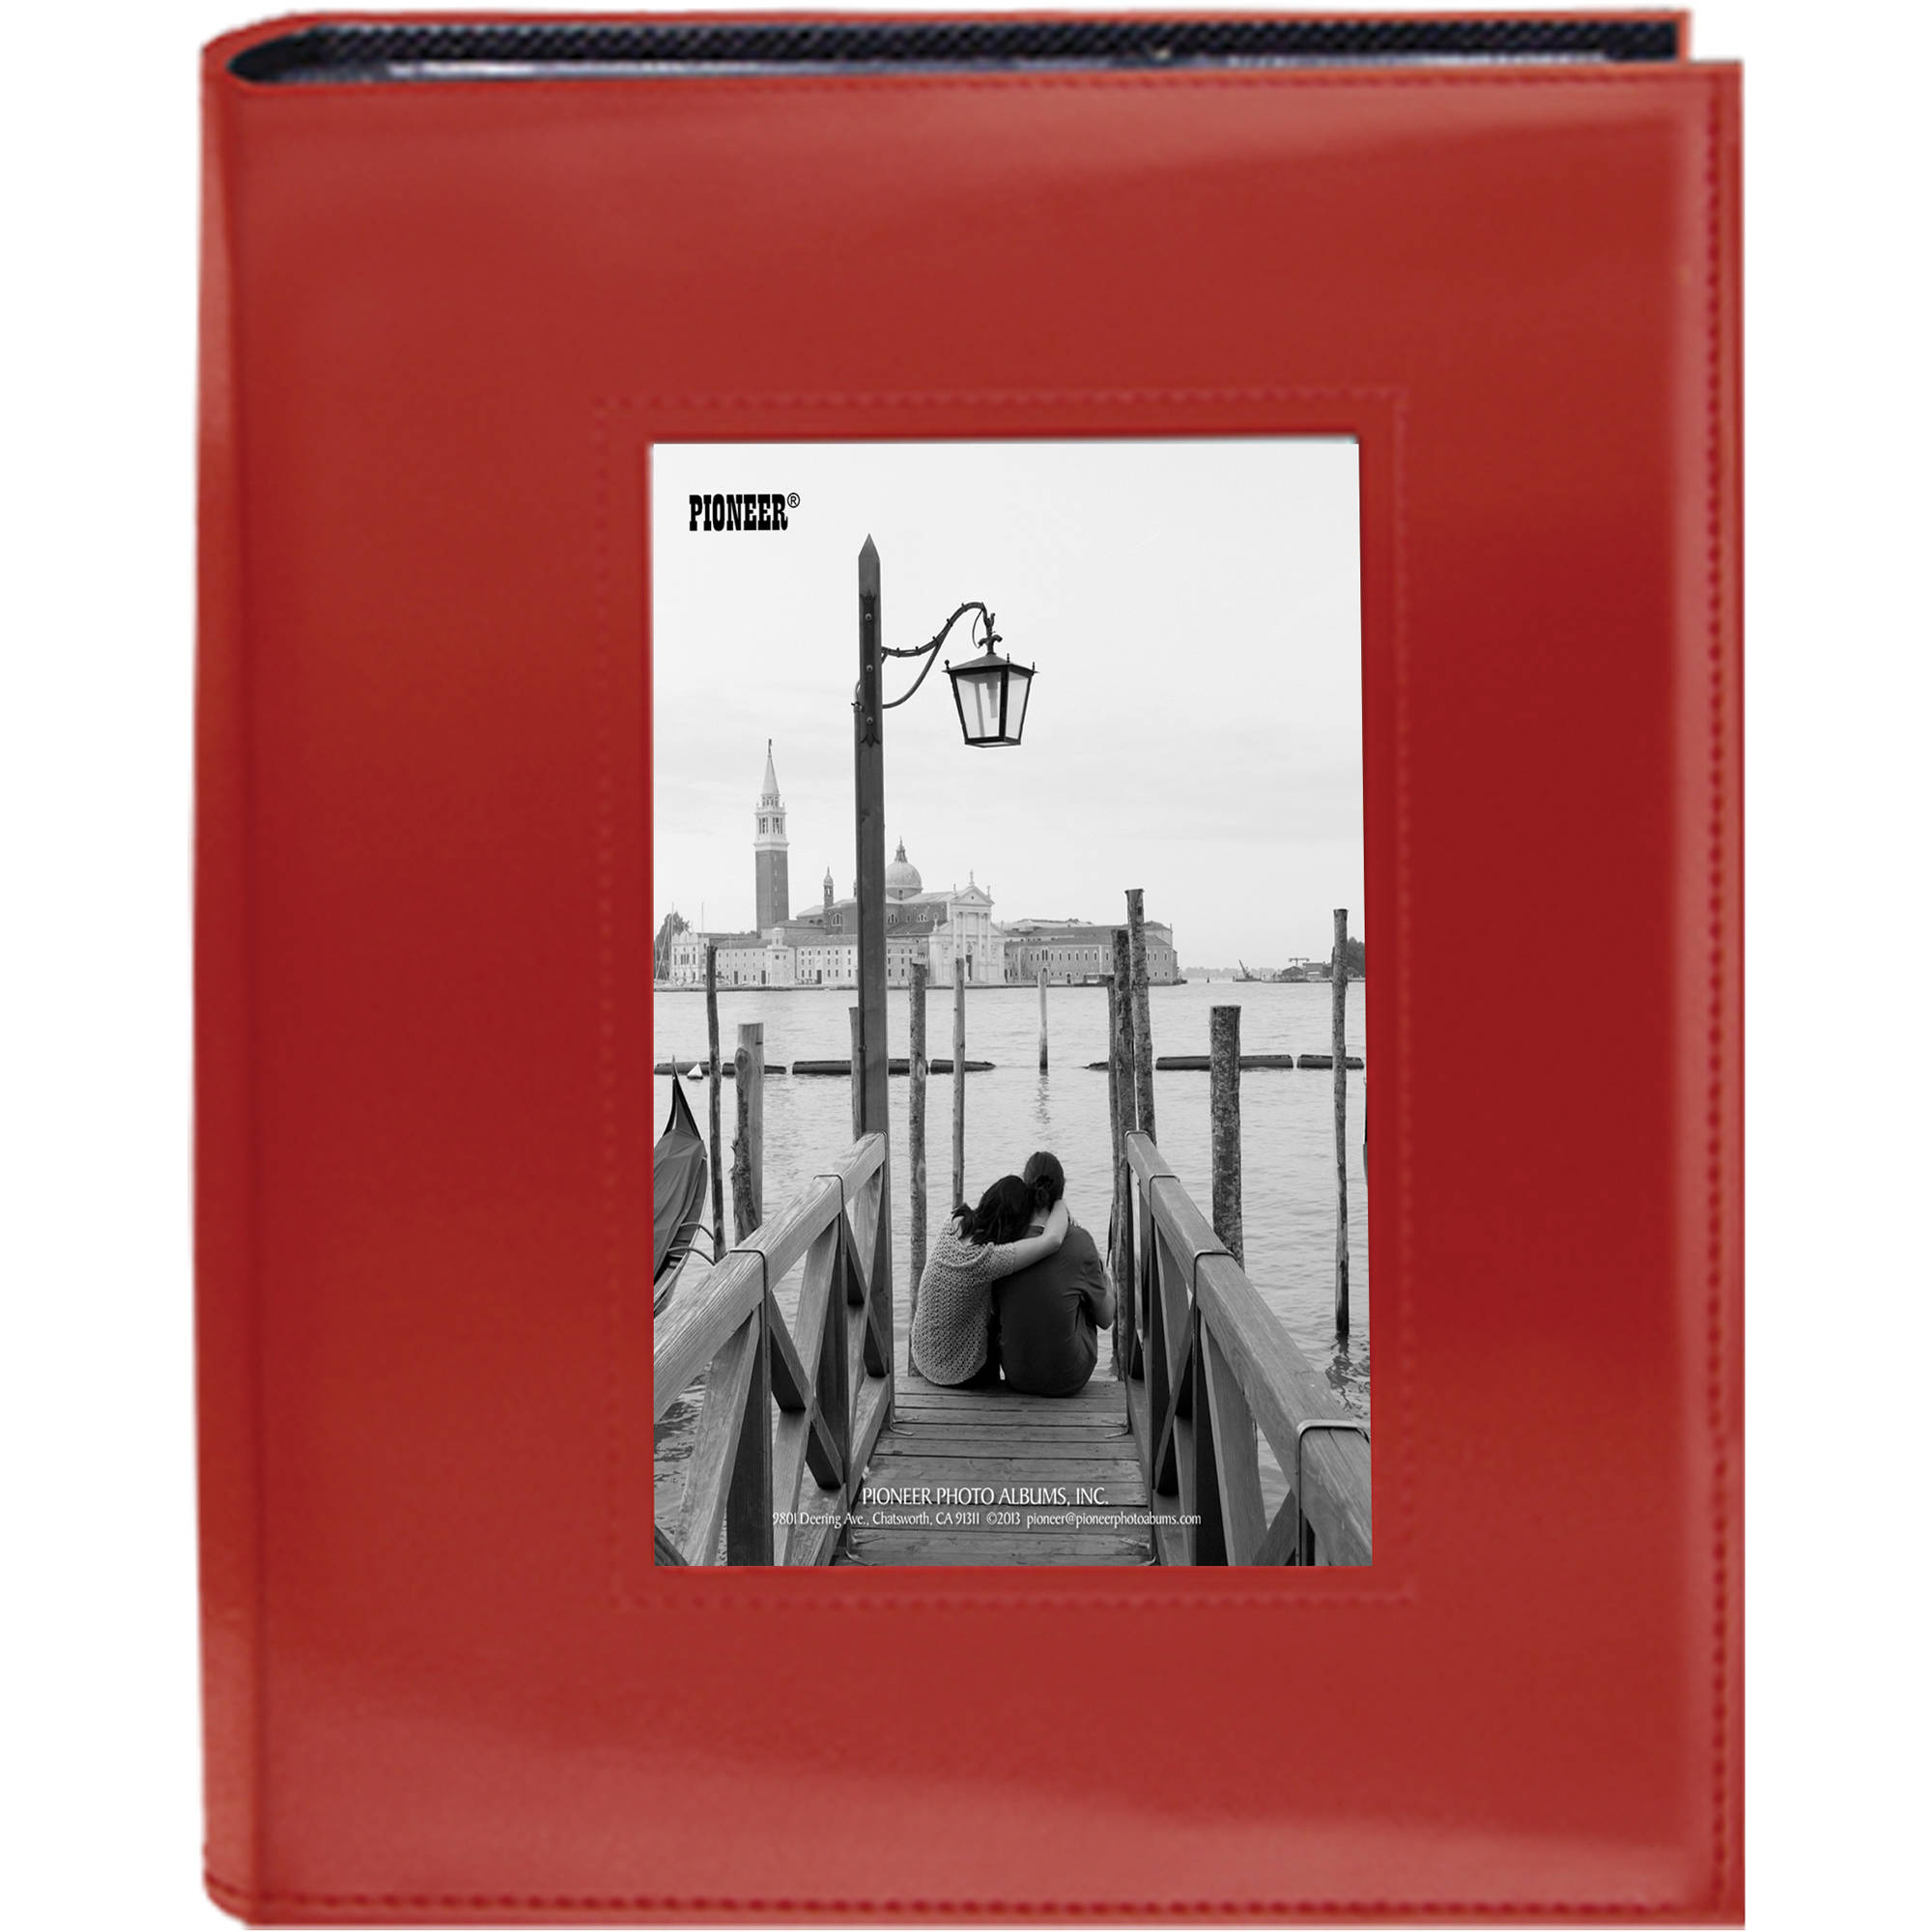 Pioneer Photo Albums Sewn Photo Album With Frame Cutout Frm246r